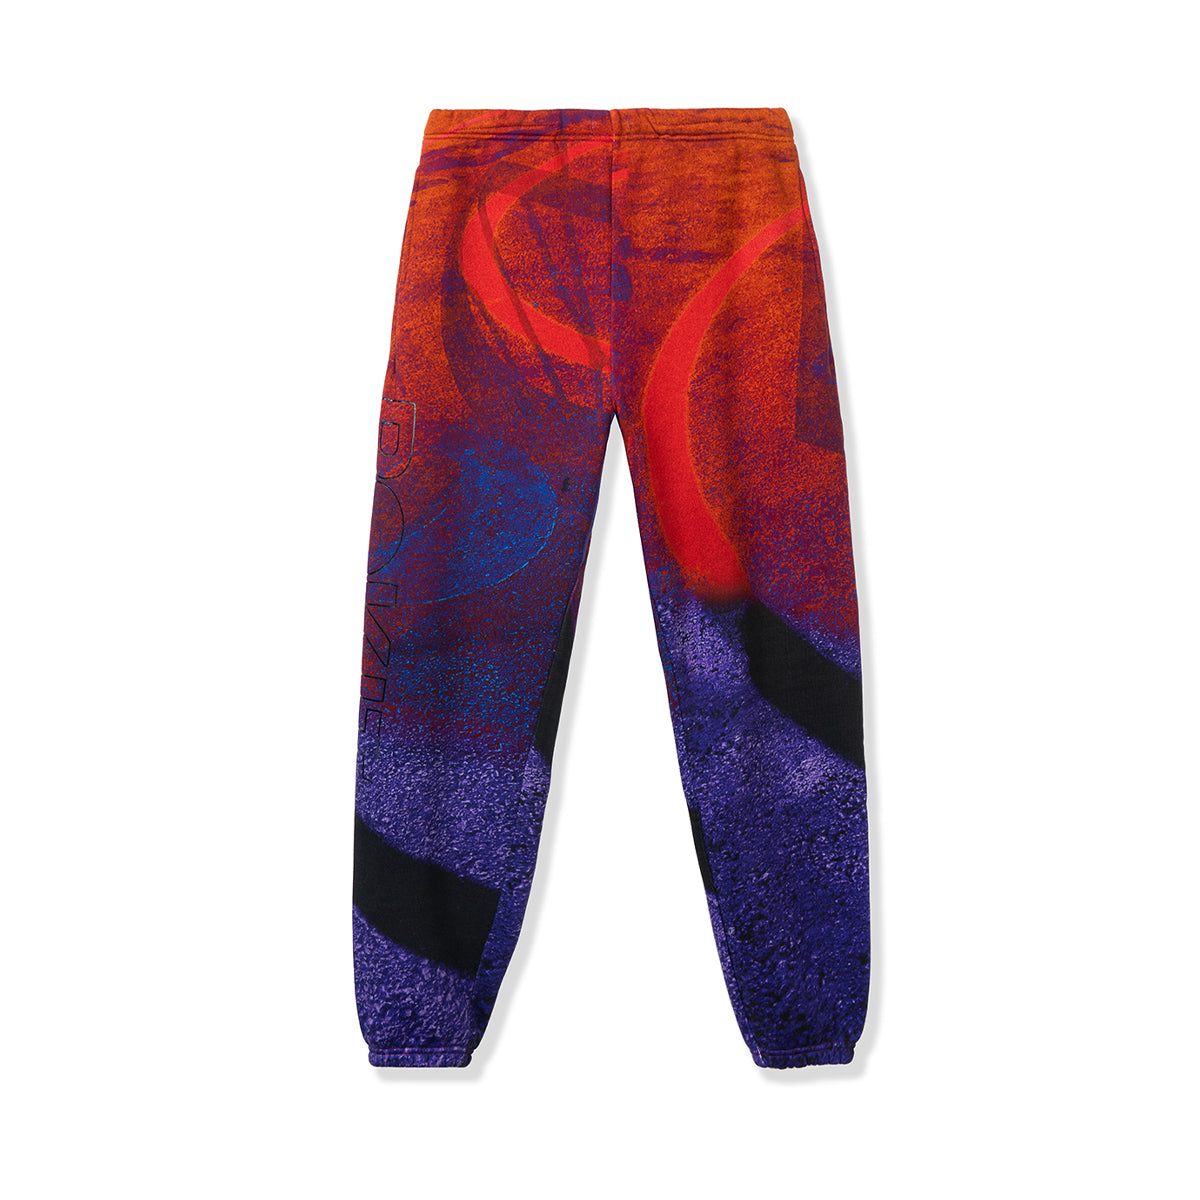 ROKIT M'S PANTS BLACKTOP SWEATPANTS - PURPLE